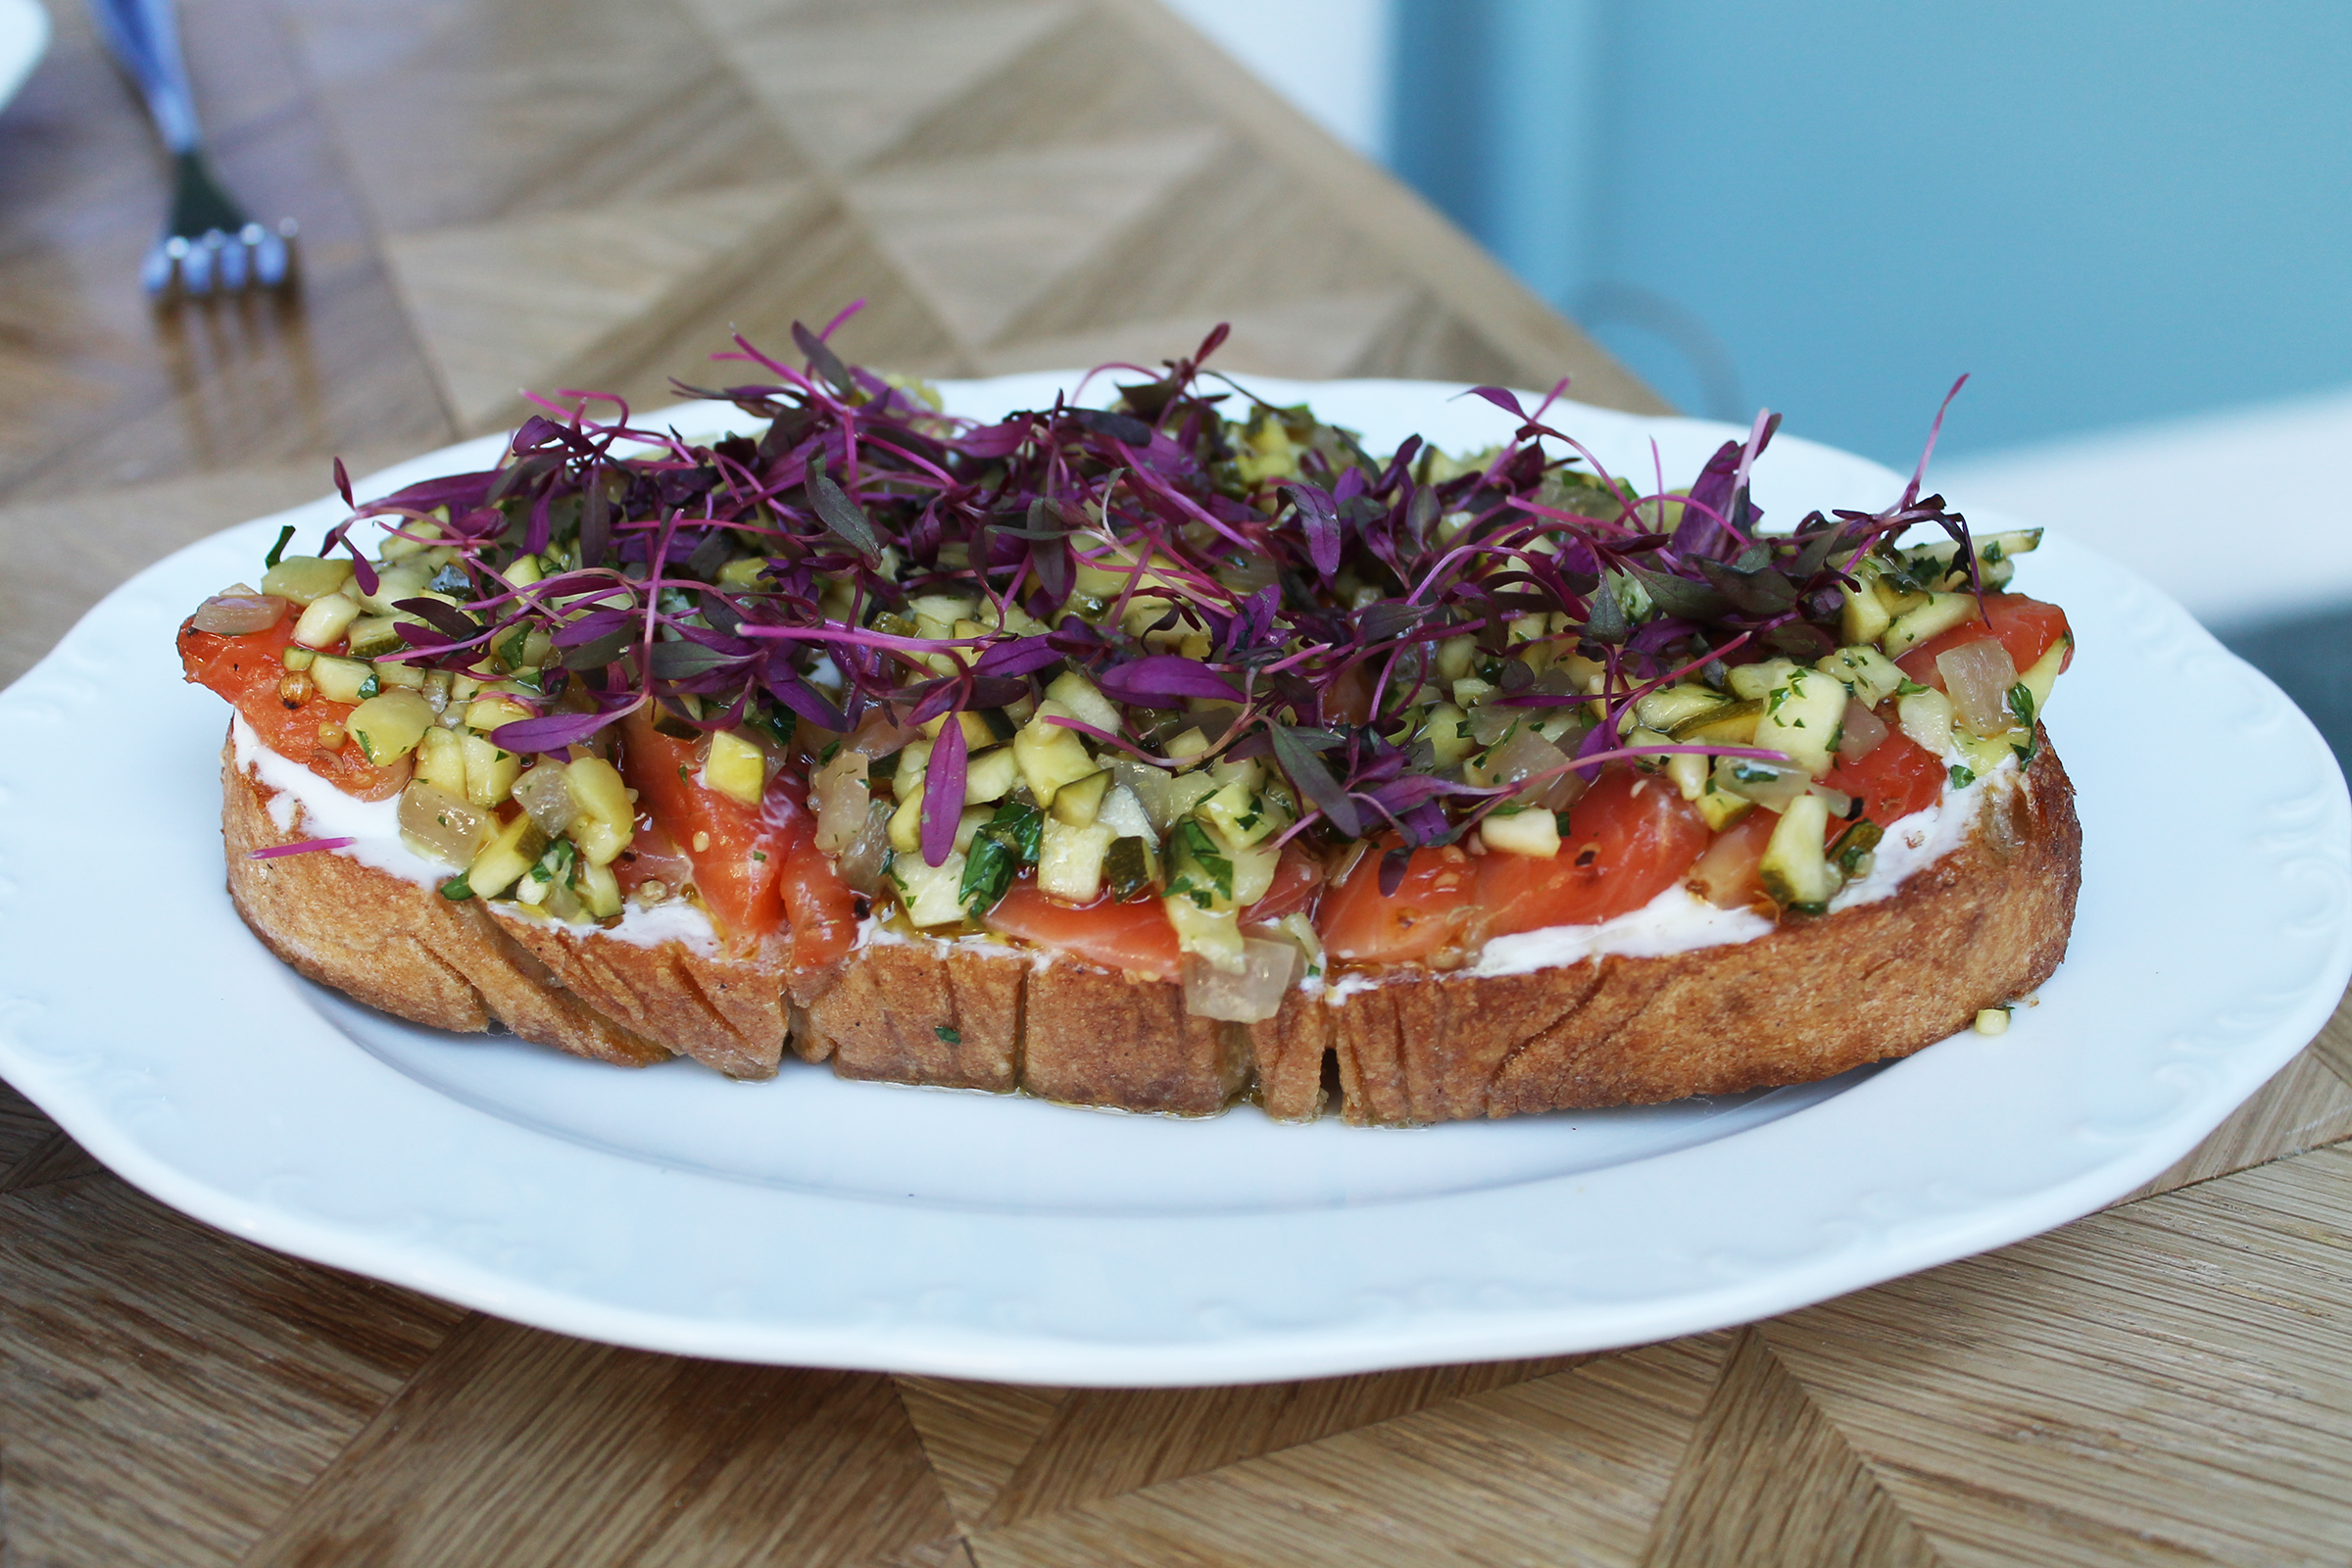 PASTRAMI-CURED SALMON TARTINE :Country Bread, Ricotta Cheese, Spice Pickled Squash